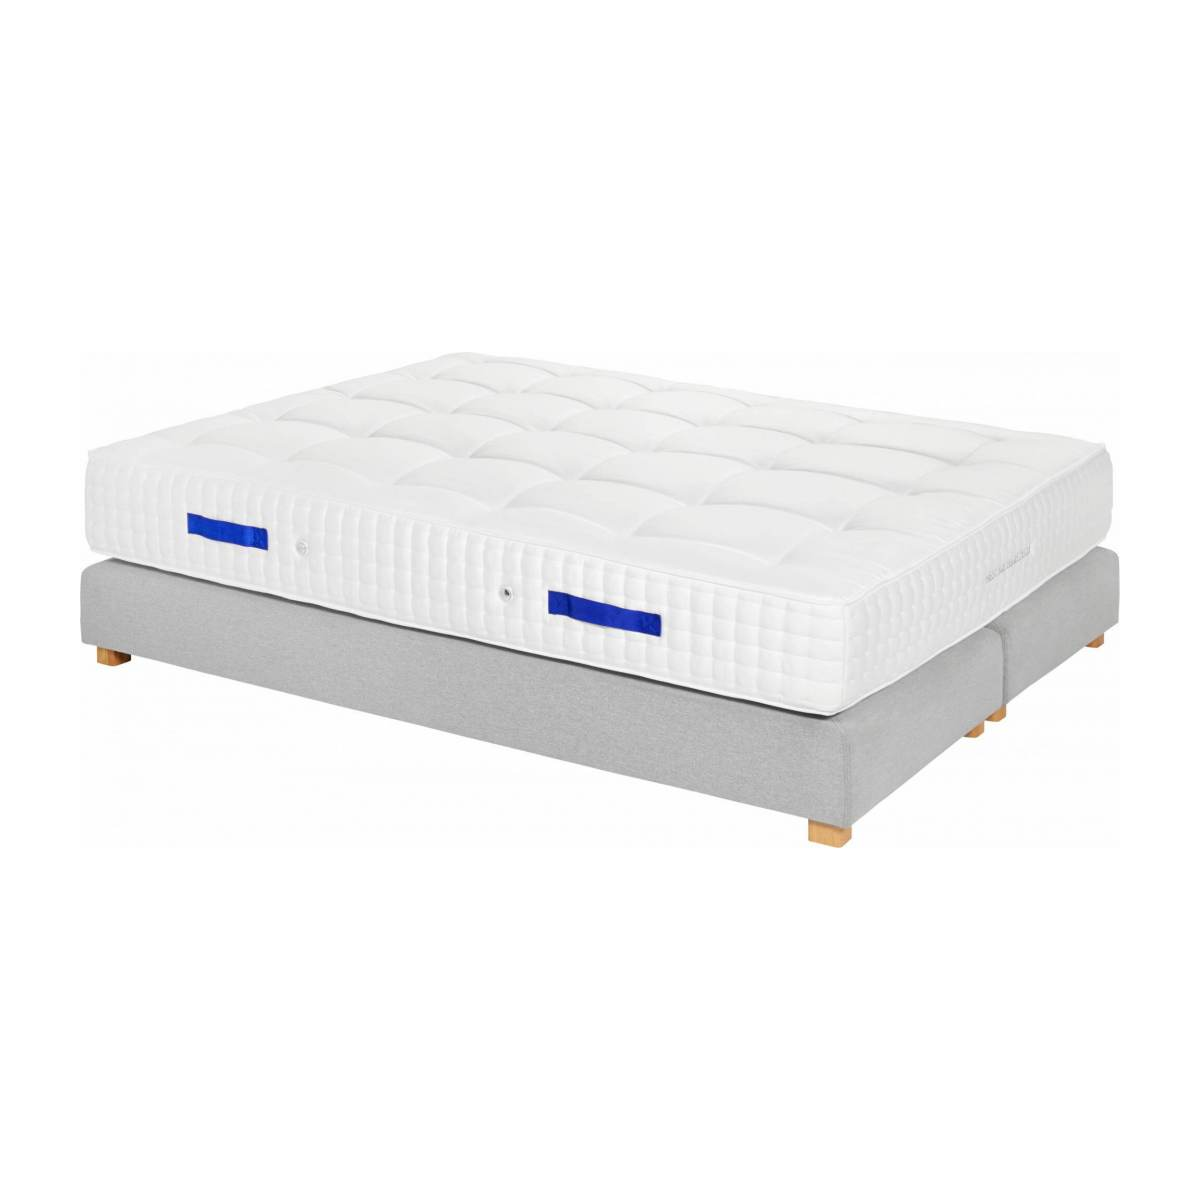 Spring mattress, width 26 cm - 180x200cm - medium support n°5